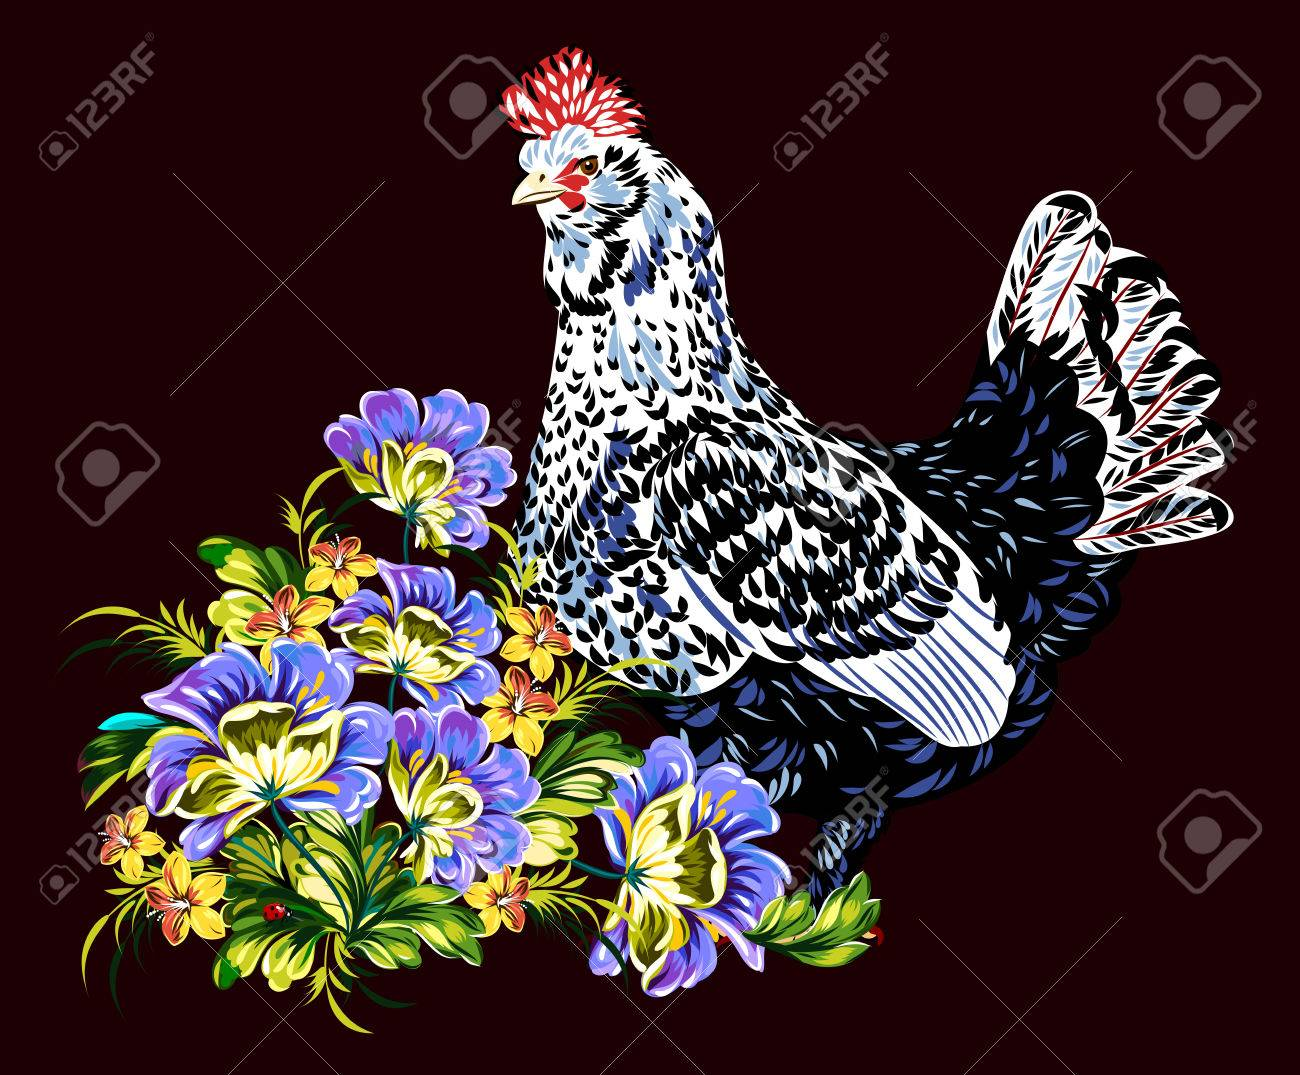 Image Of Elegant Beautiful Chicken With Colorful Feathers Symbol